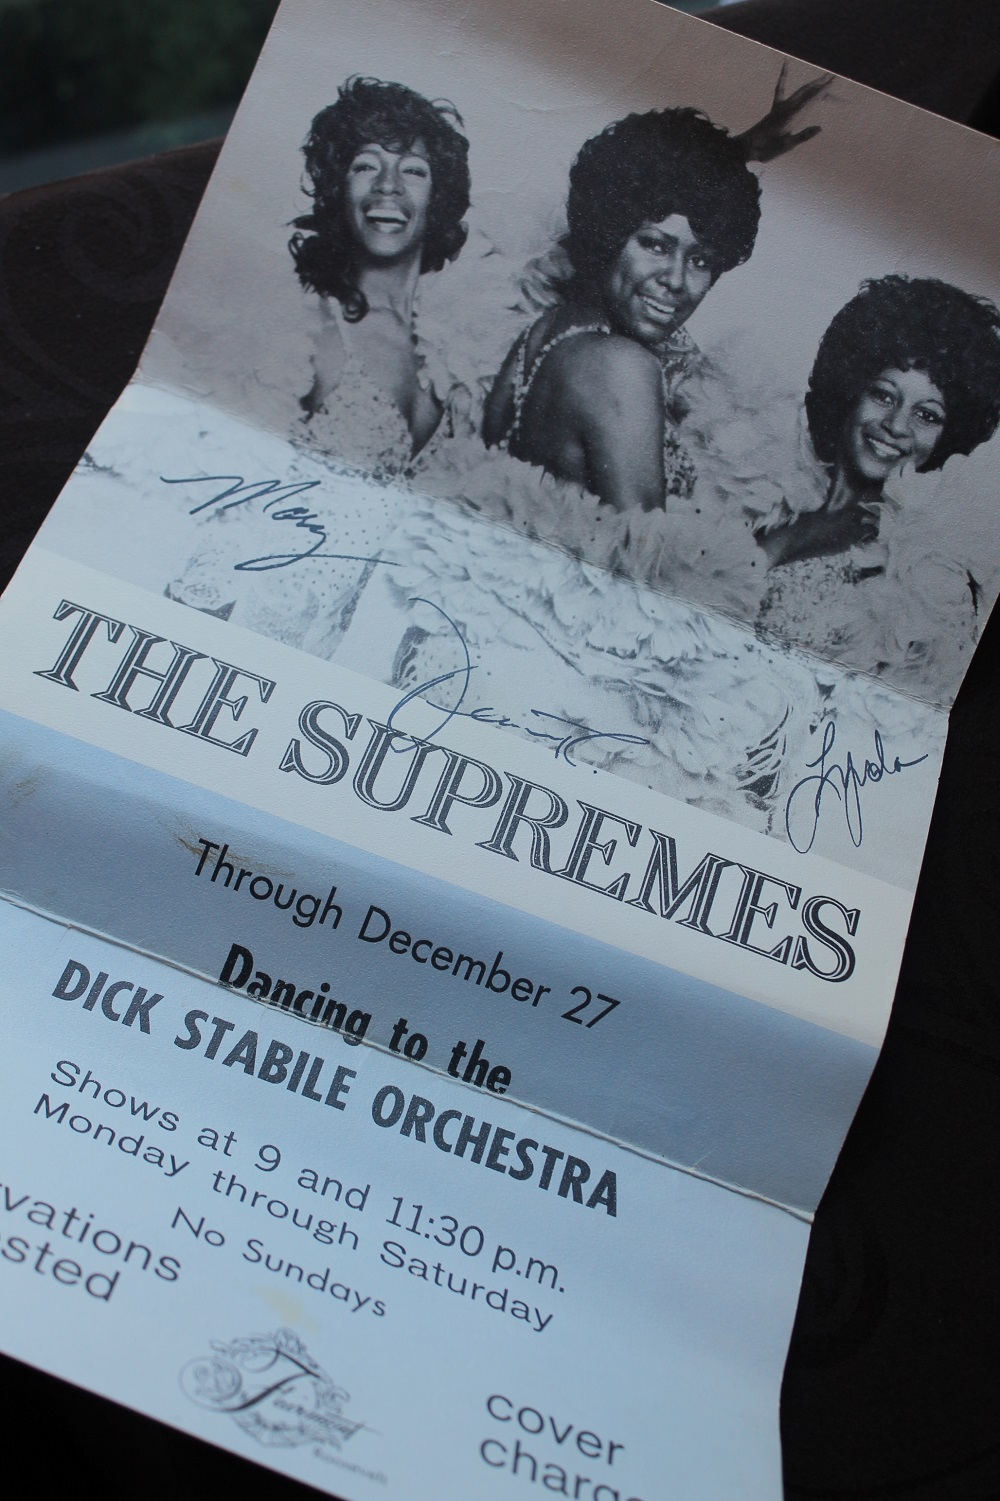 When The Supremes Played The Blue Room